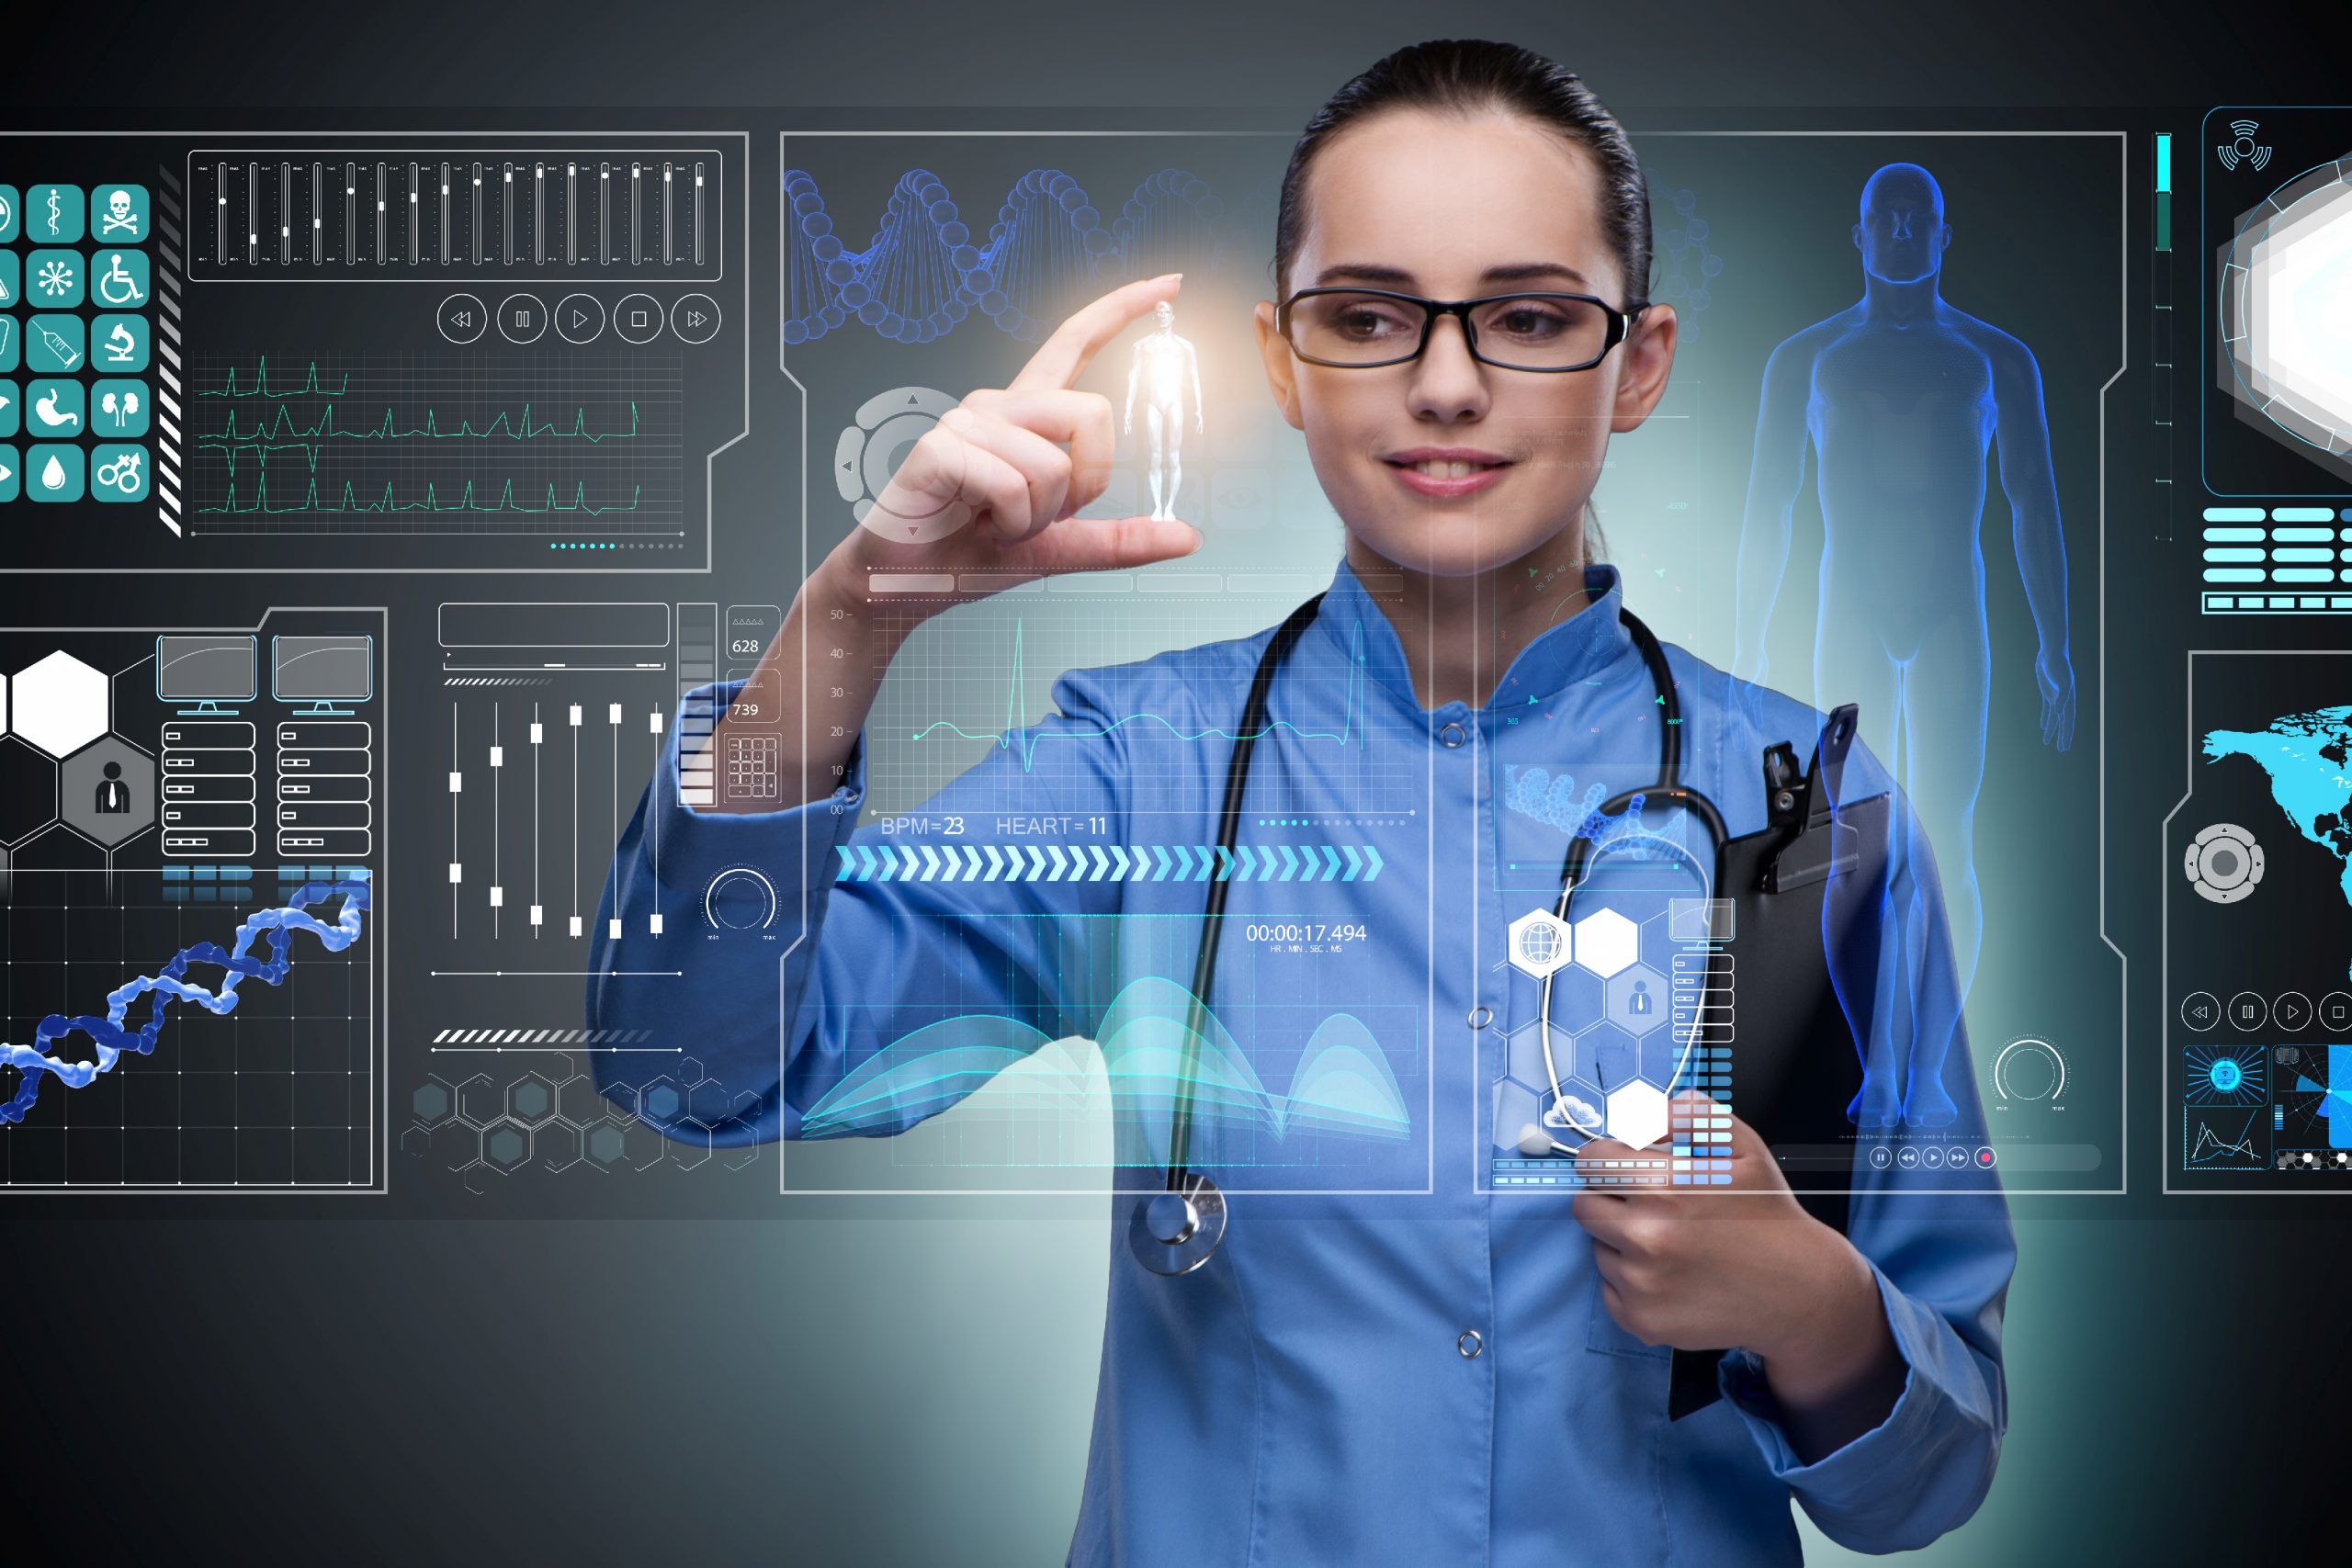 Predictive analytics in healthcare enables to make more informed decisions. Doctor in futuristic medical concept pressing button